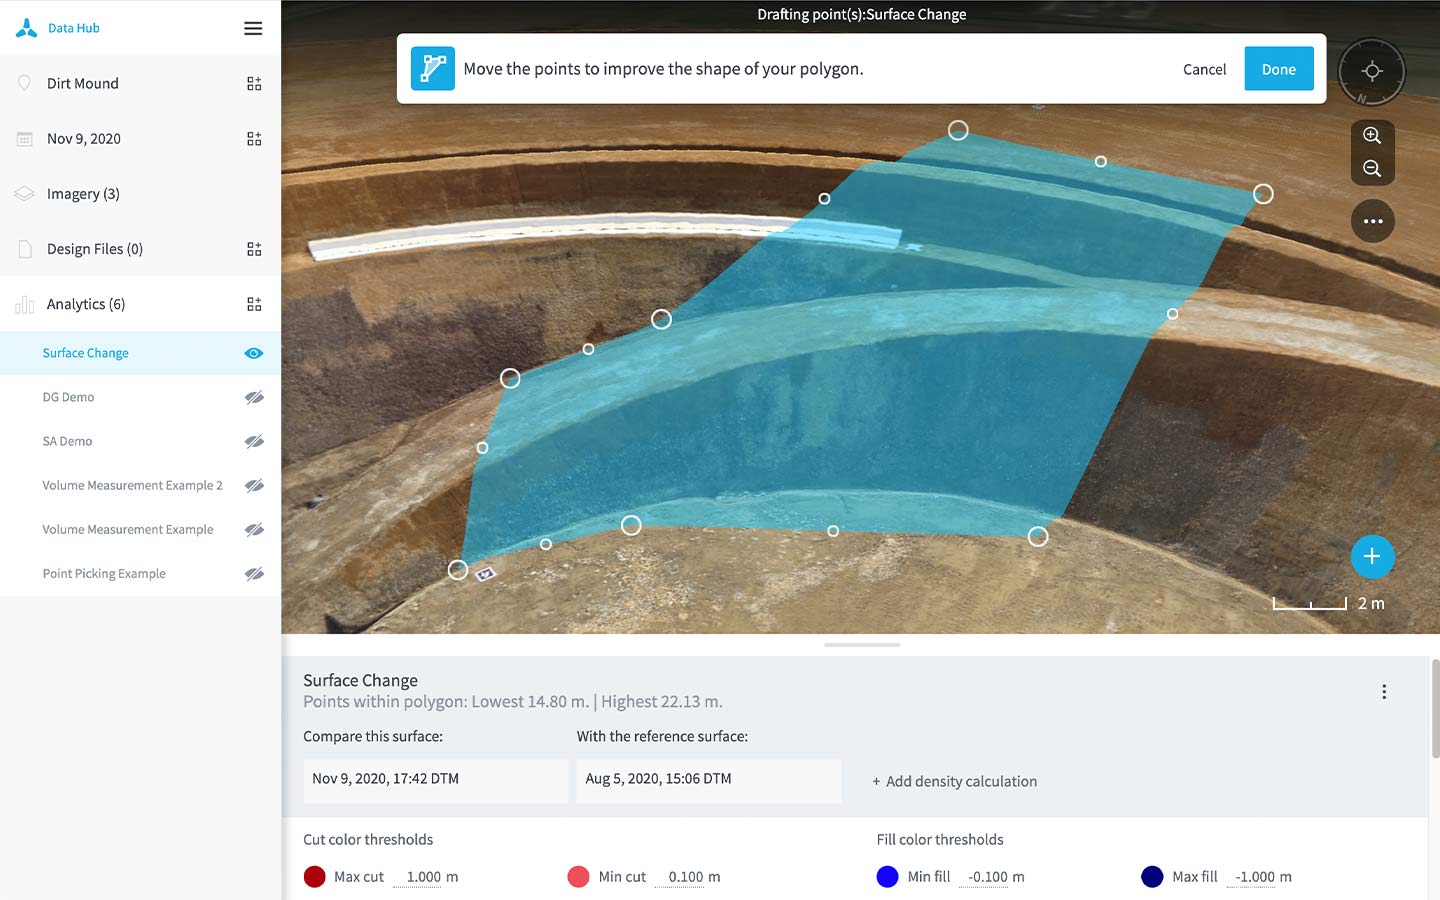 3D changes over time drone analytics in Data Hub